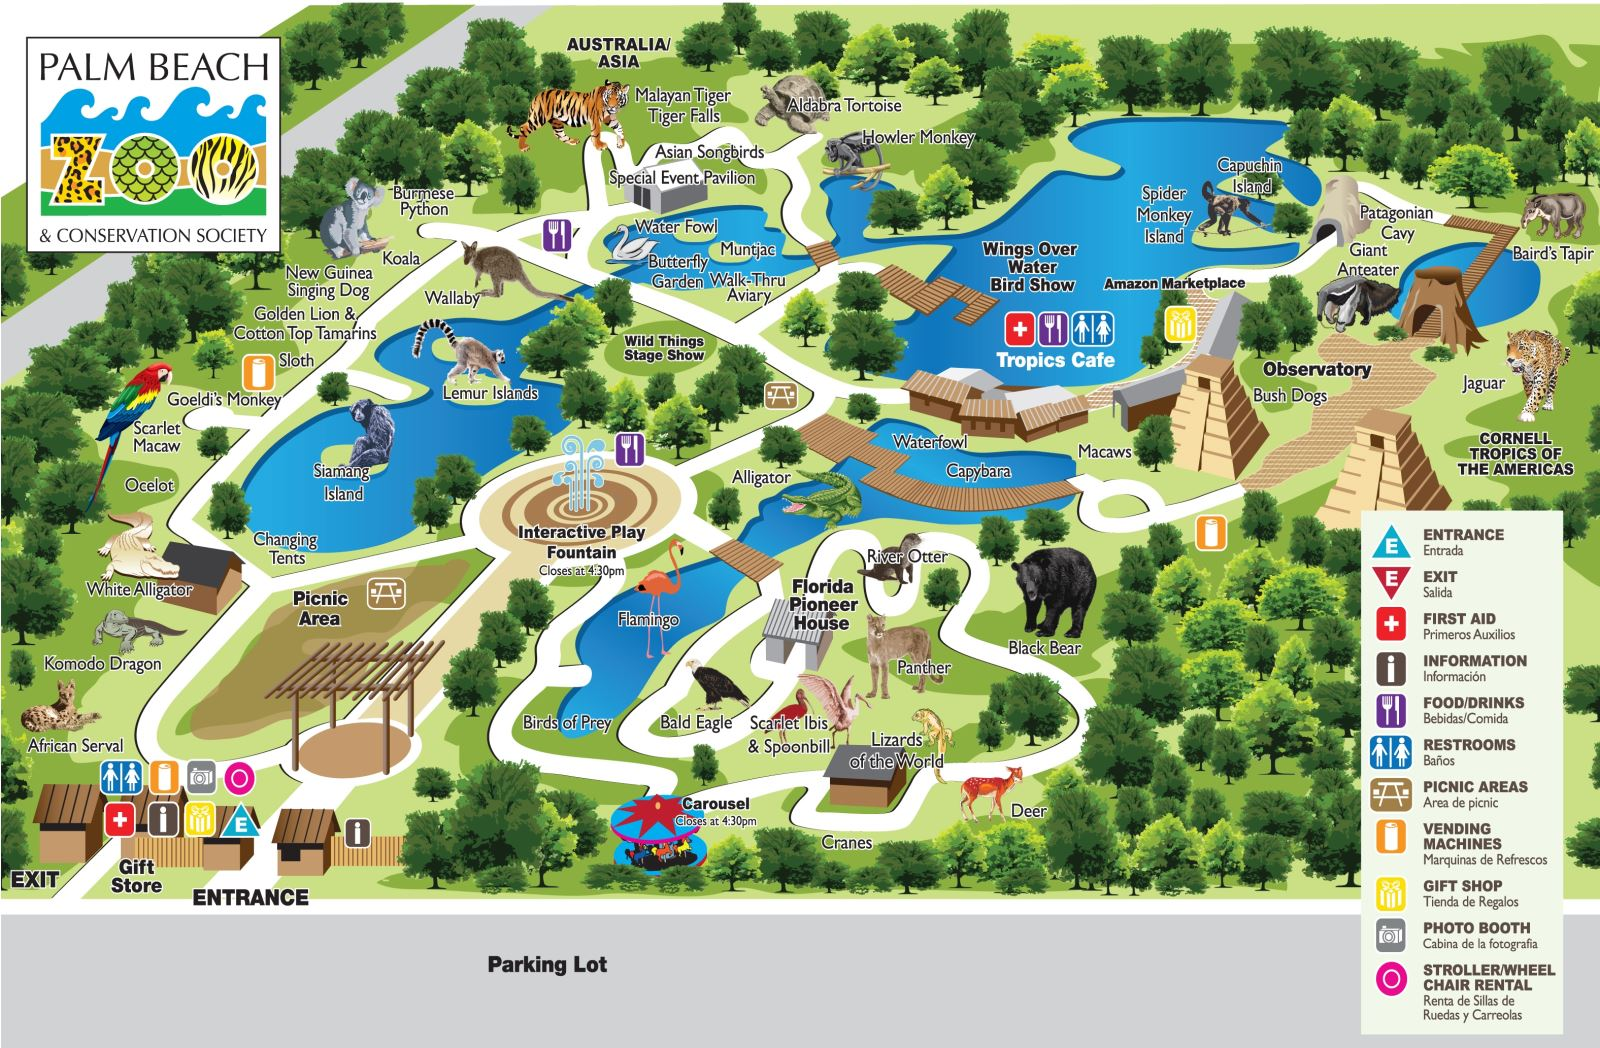 Palm Beach Zoo Receives Community Development Grant from Bank of ...